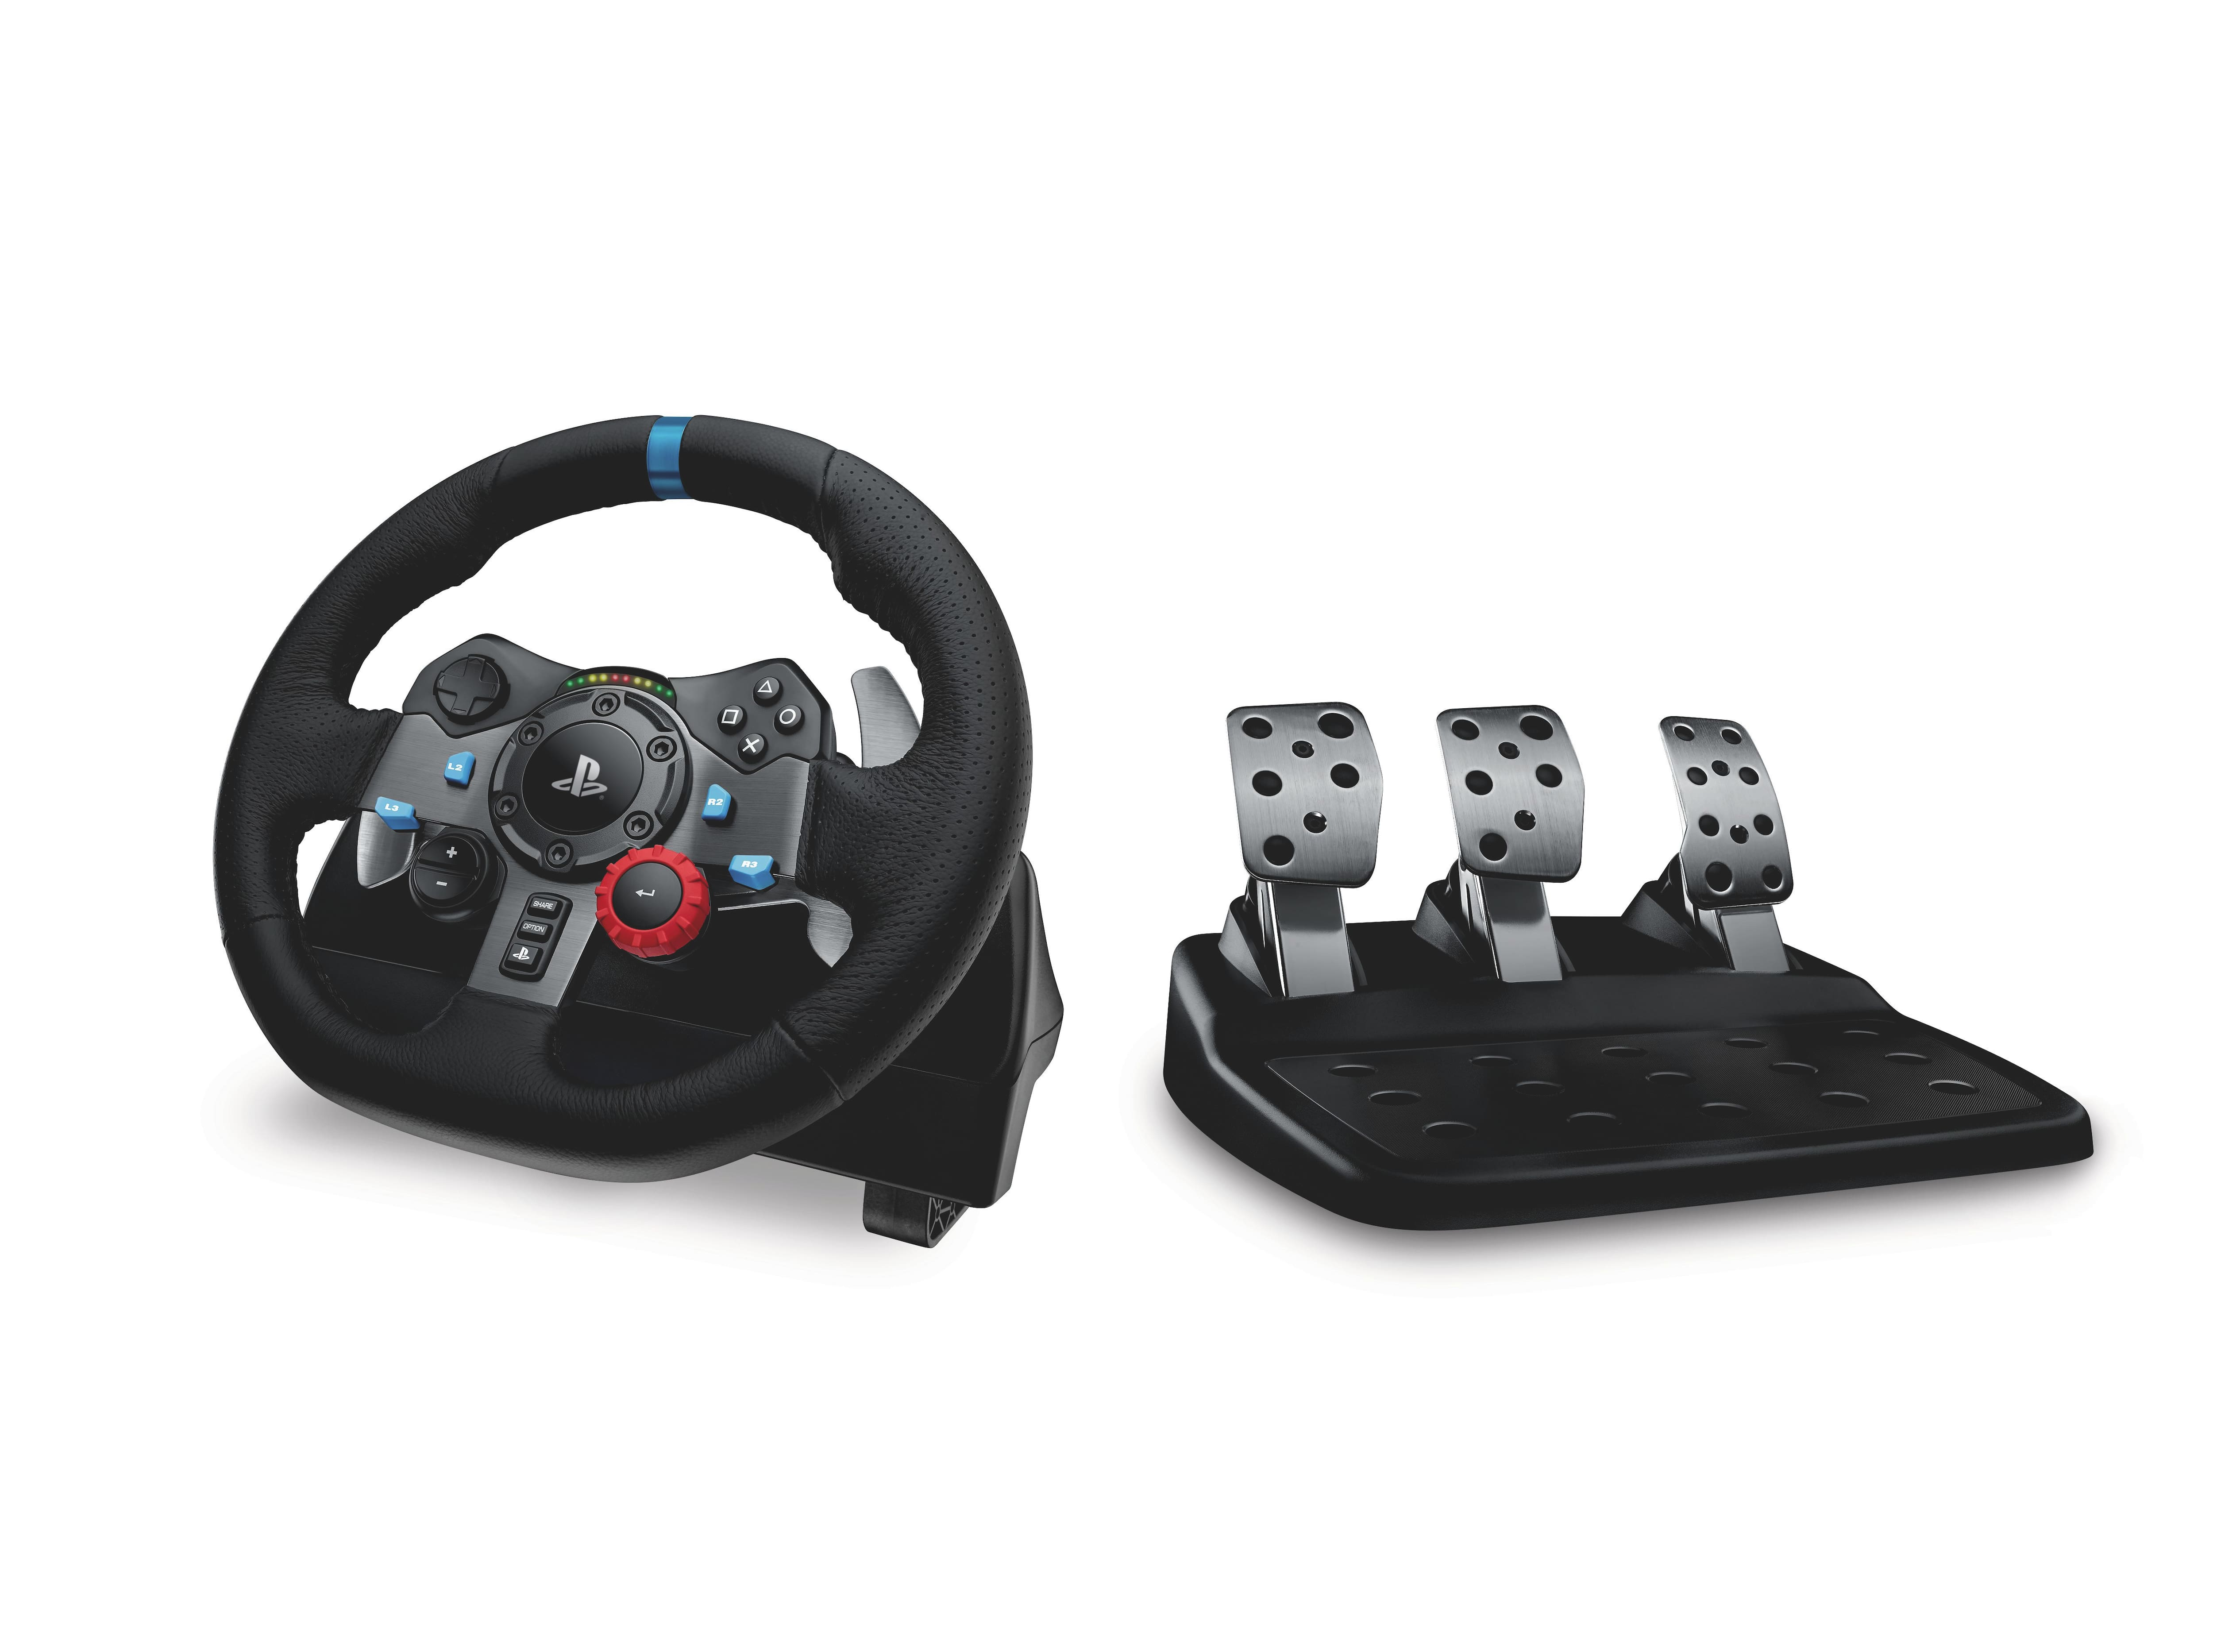 Logitech G29 for 234.99 at walmart and free shipping $234.98